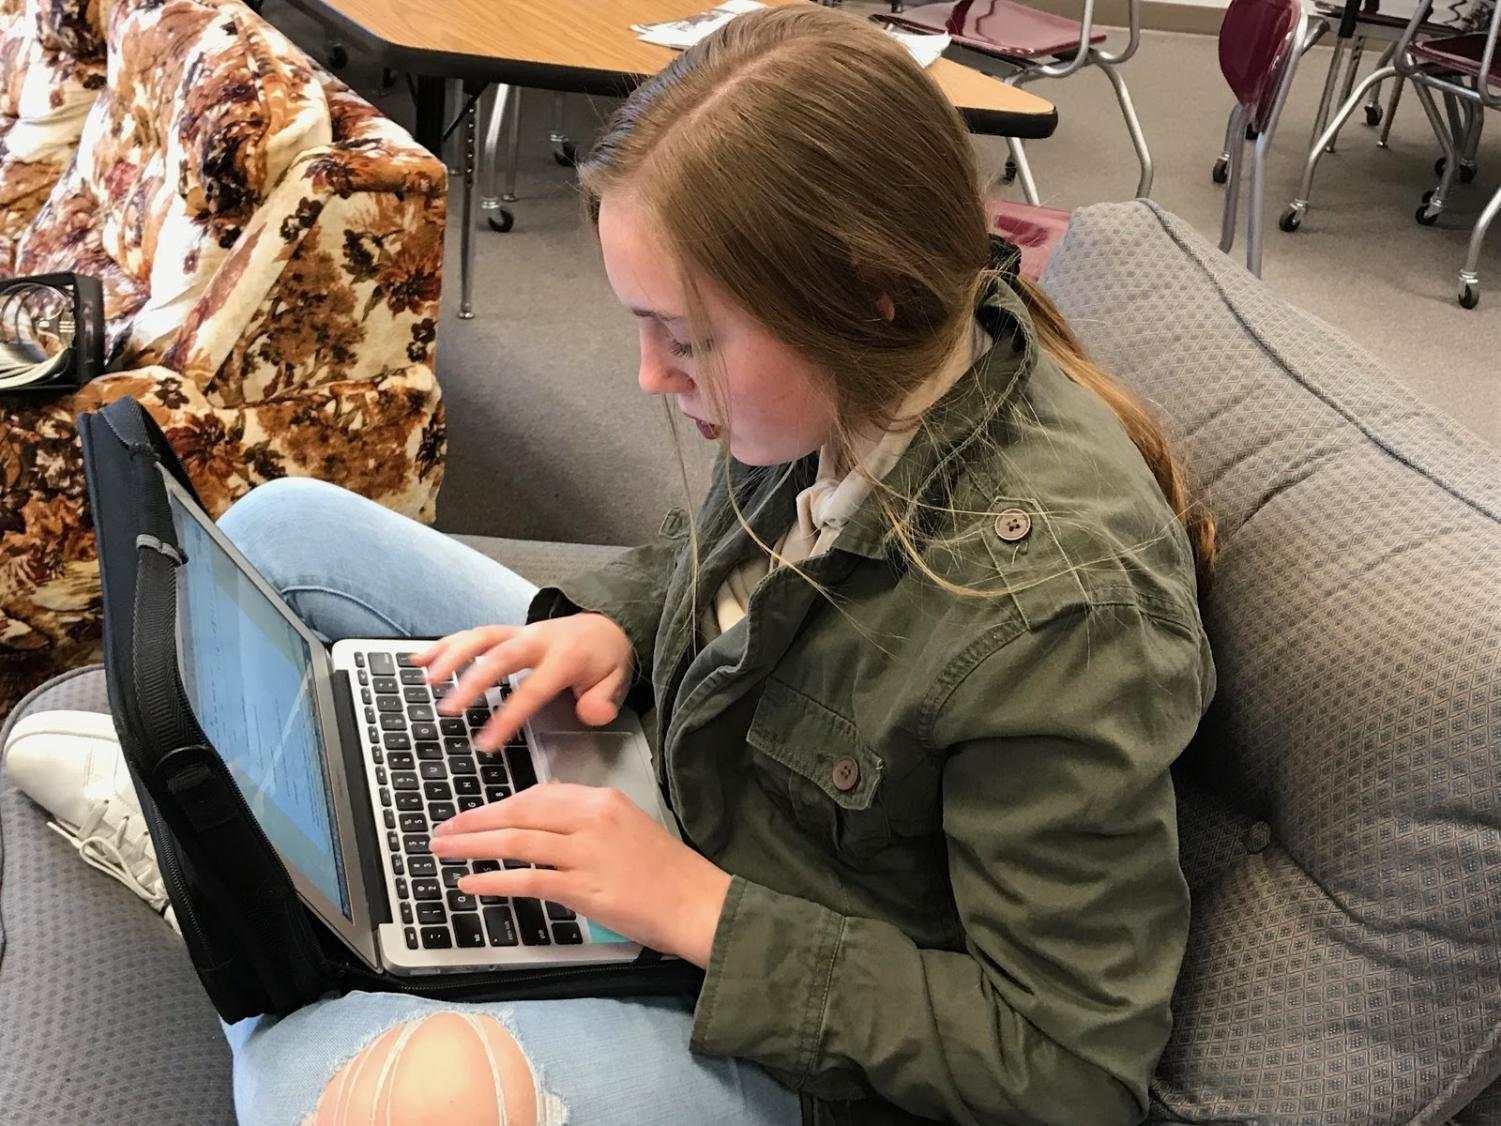 WORKING HARD - Alyssa Brockob writes on her laptop during free time in class. Students who submitted work to Hot Dish used pieces made in and out of school.